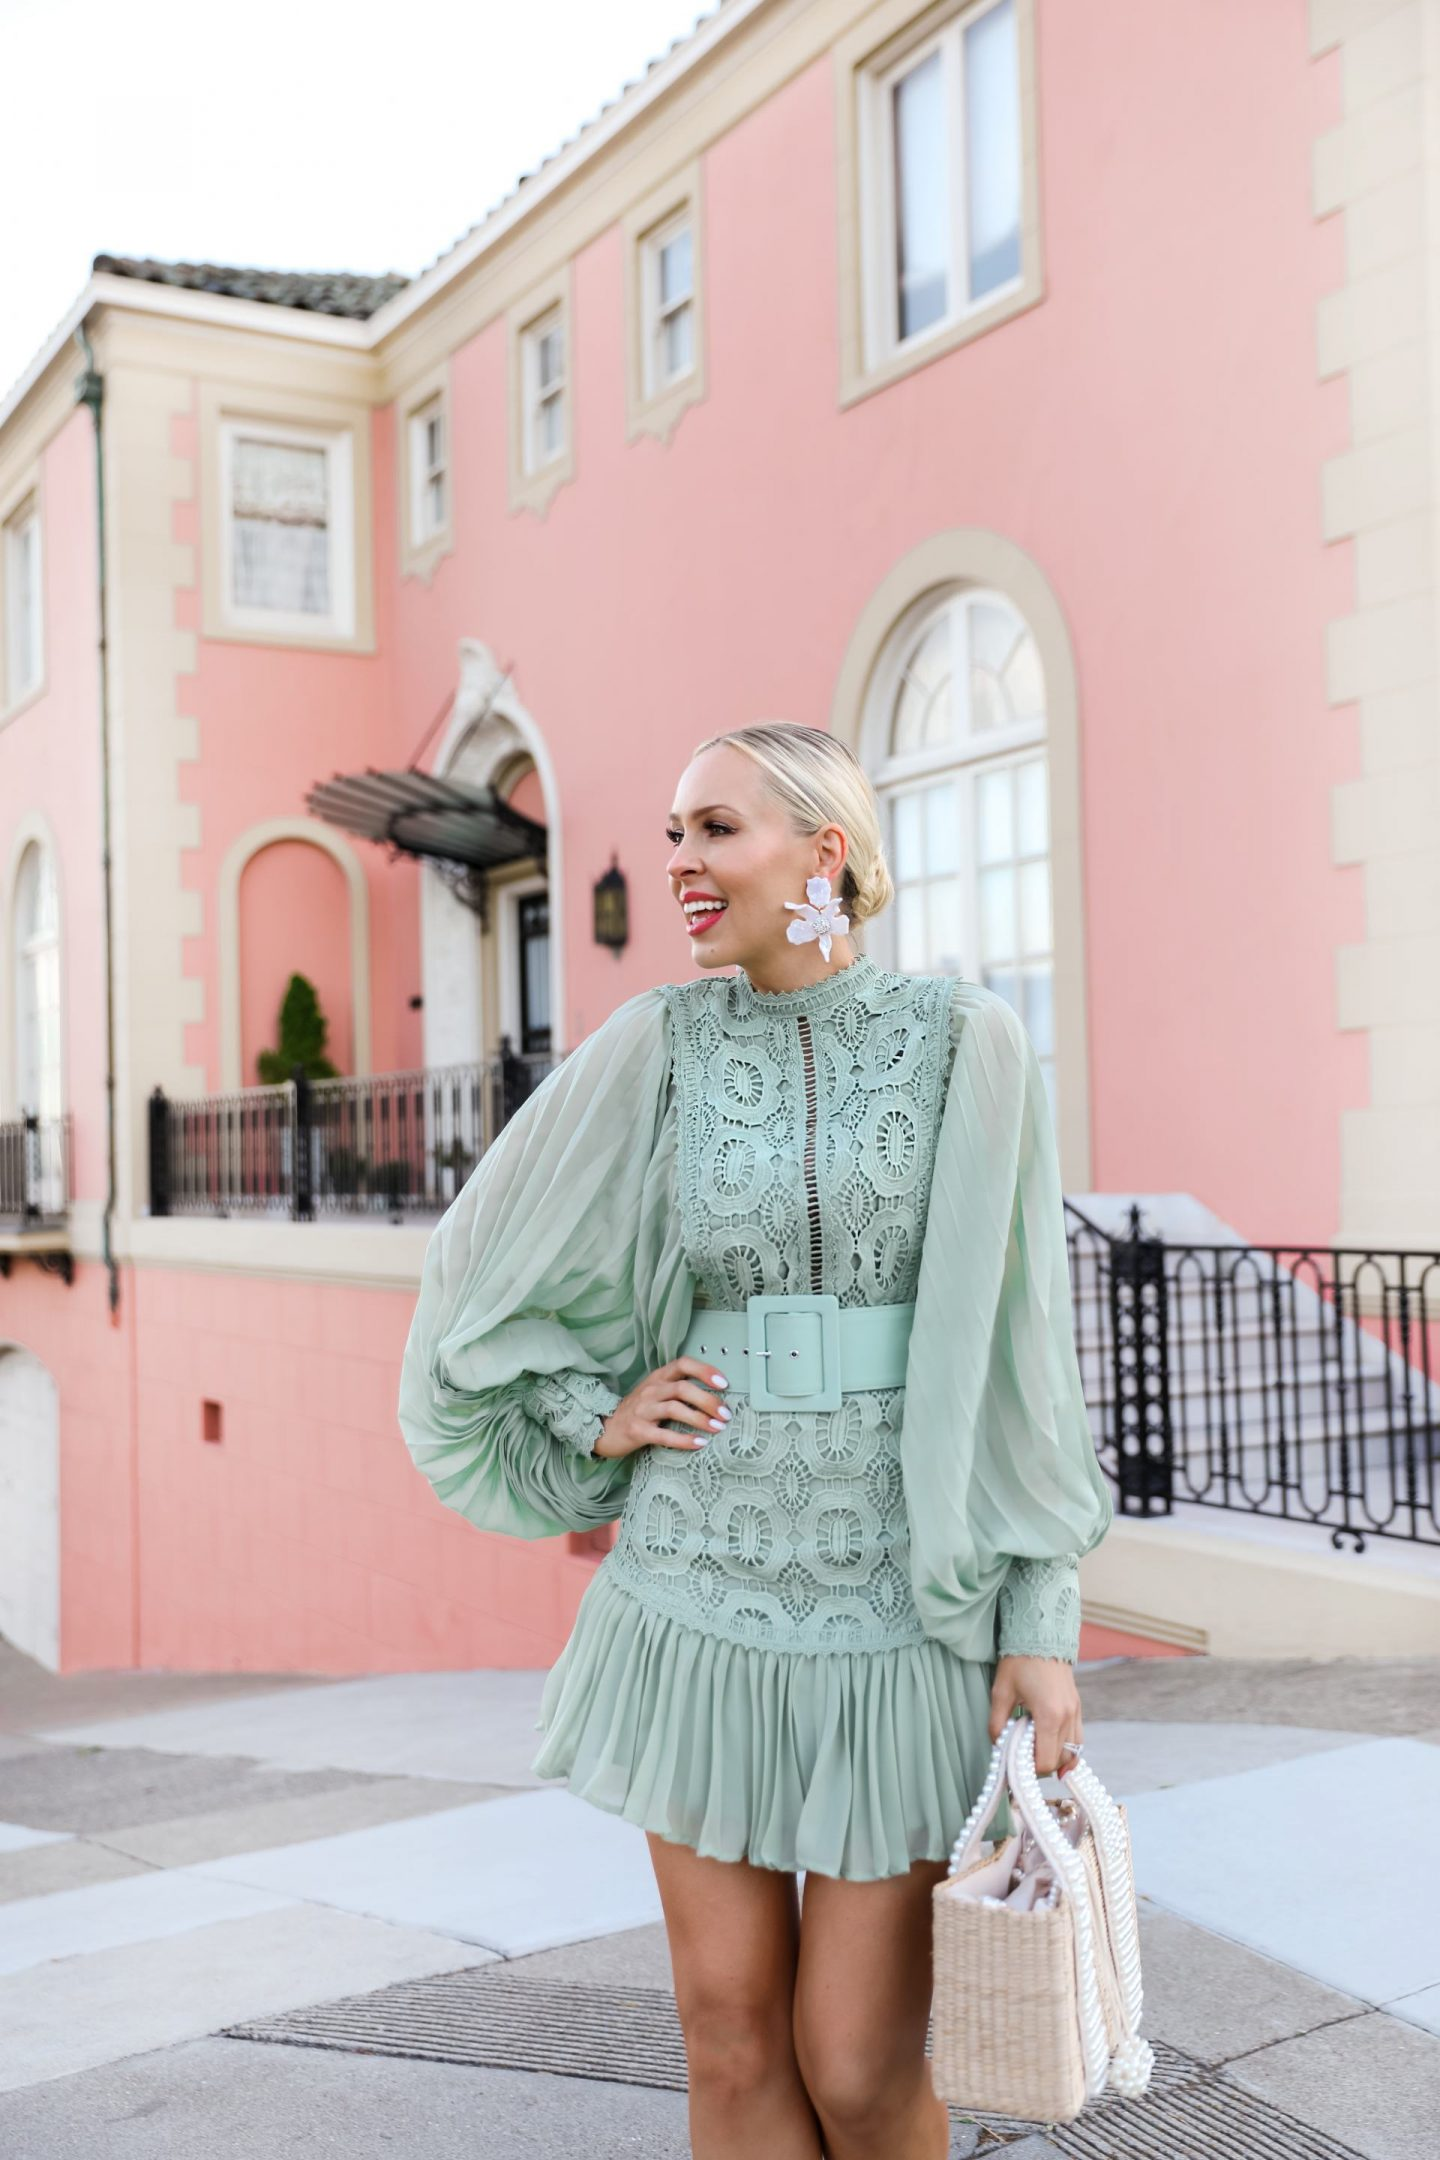 Green lace sage mini dress from ASOS, by a pink house in San Francisco, by Lombard & Fifth Veronica Levy.